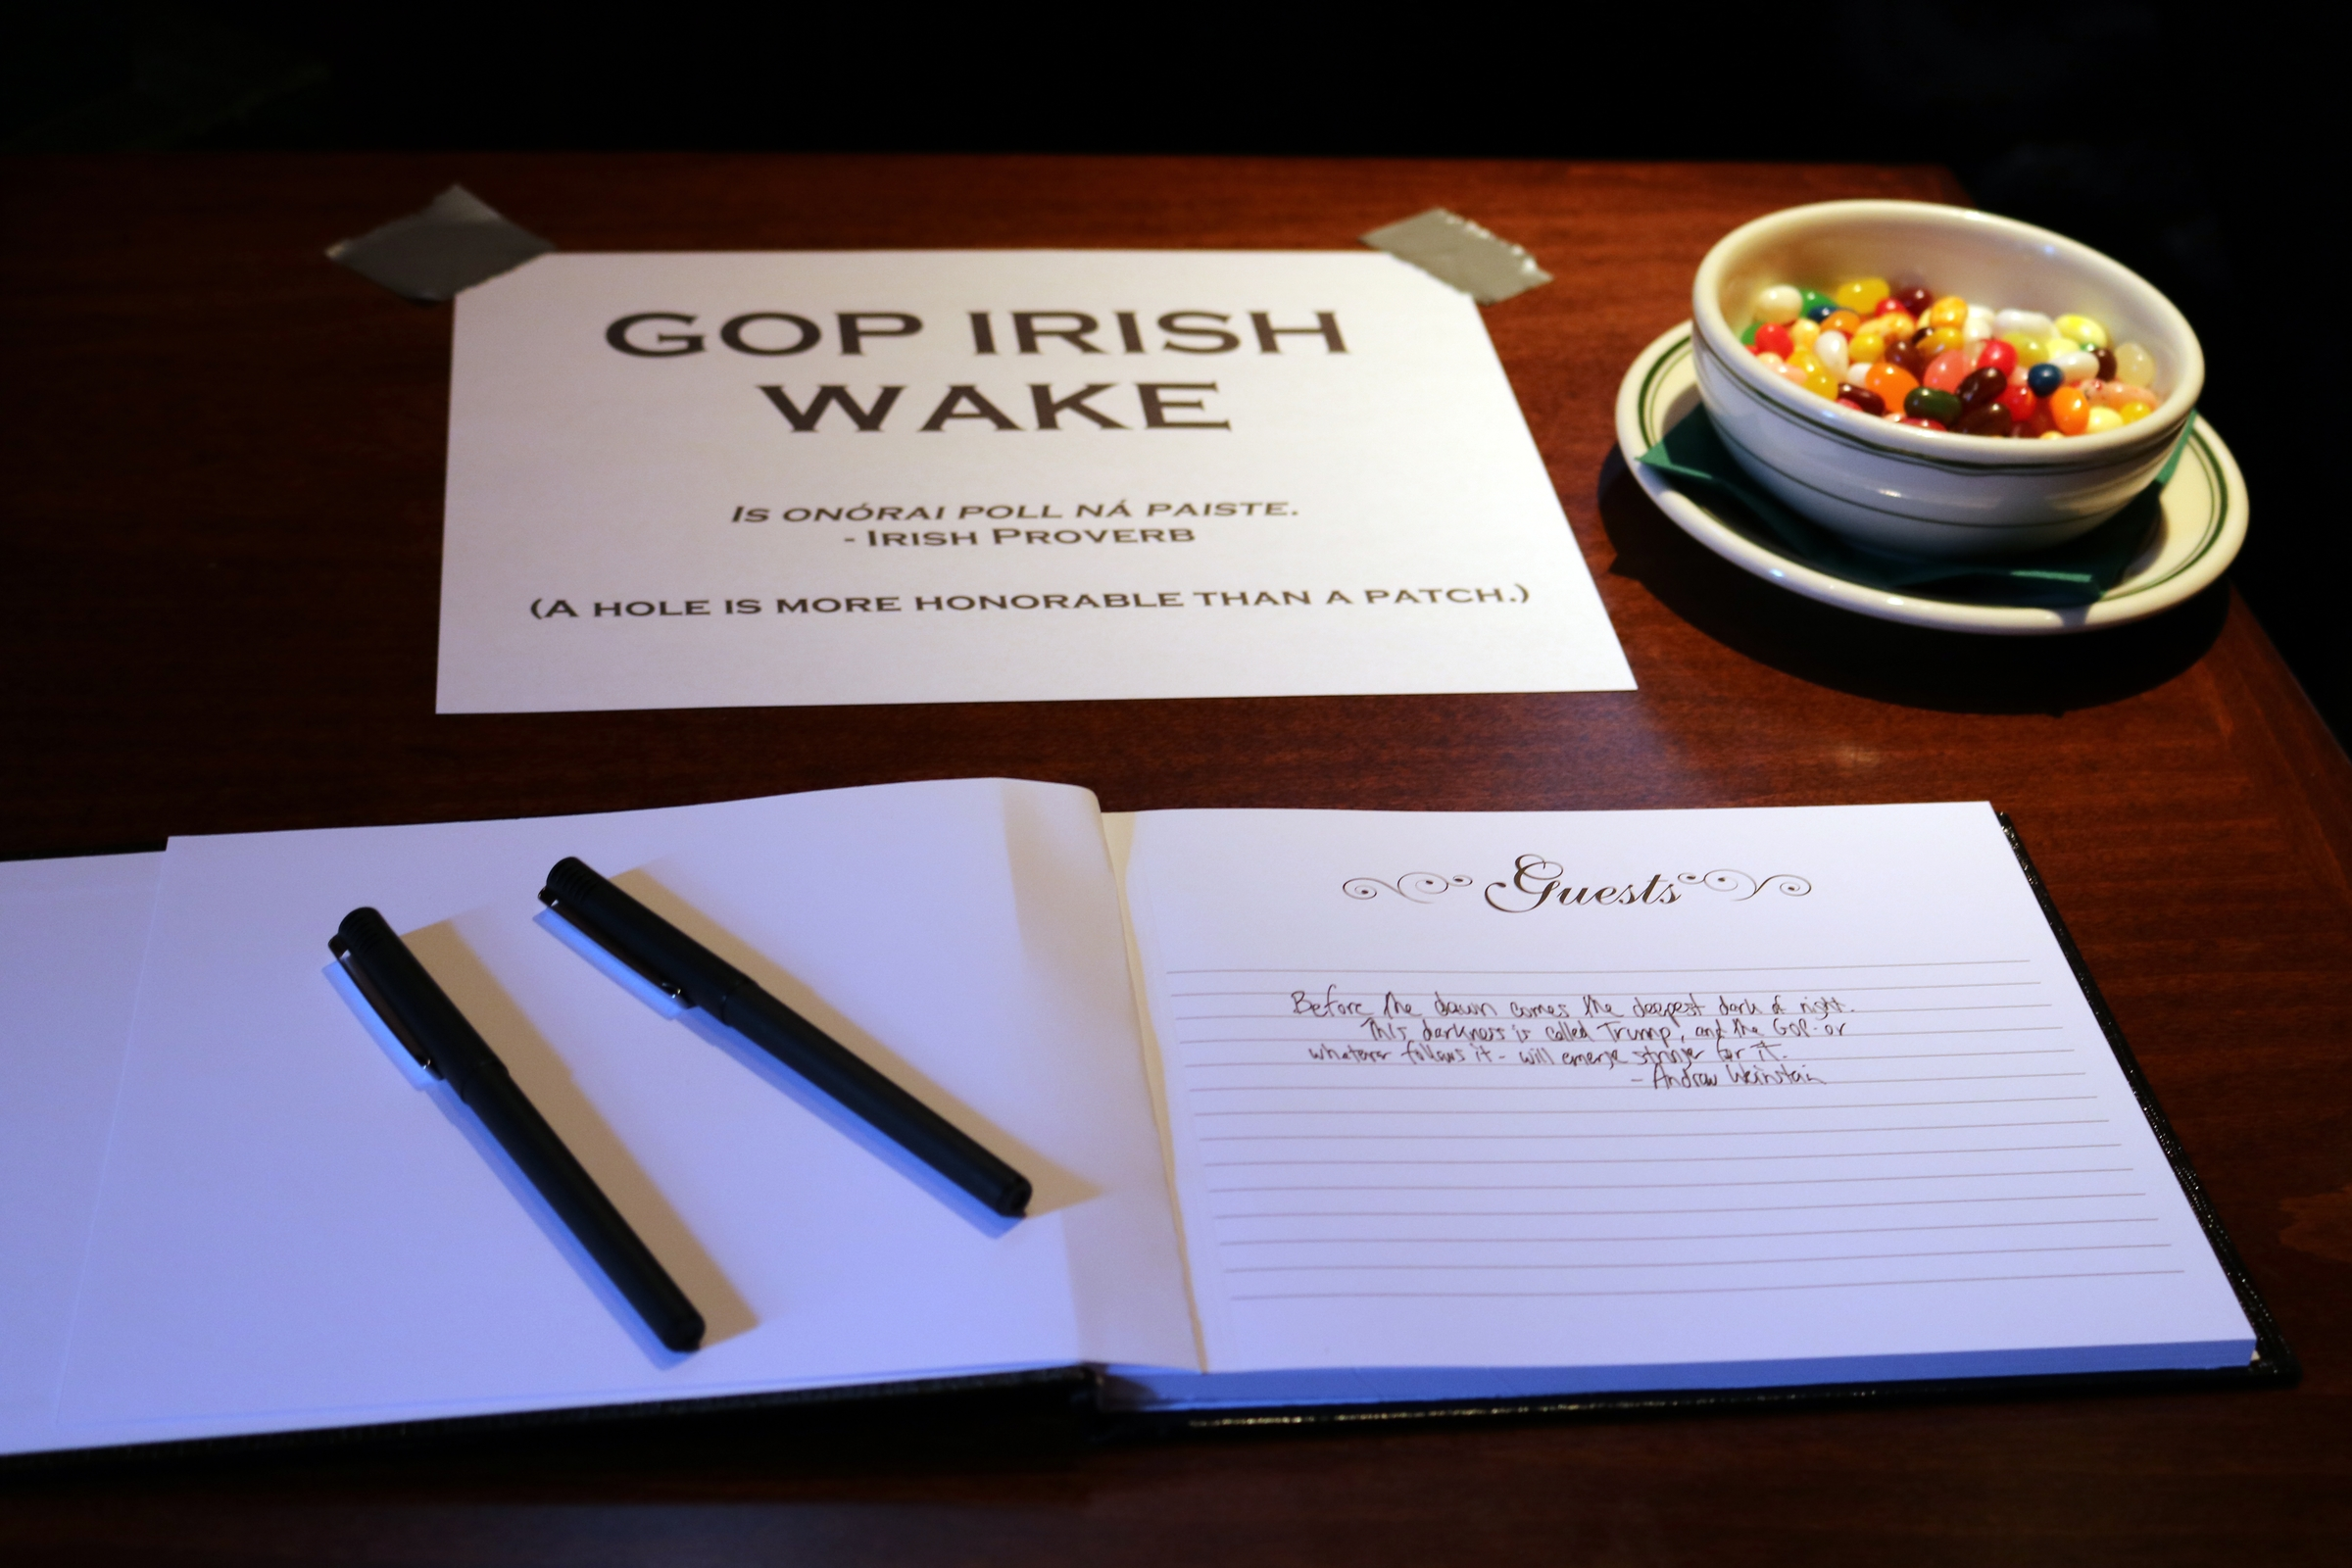 The traditional Irish wake for the Republican Party, held in the back bar of The Dubliner, offered attendees a guest book to sign and offer condolences. Former Republican staffer Andrew Weinstein organized the wake as a counter to Donald Trump's presidential acceptance speech.